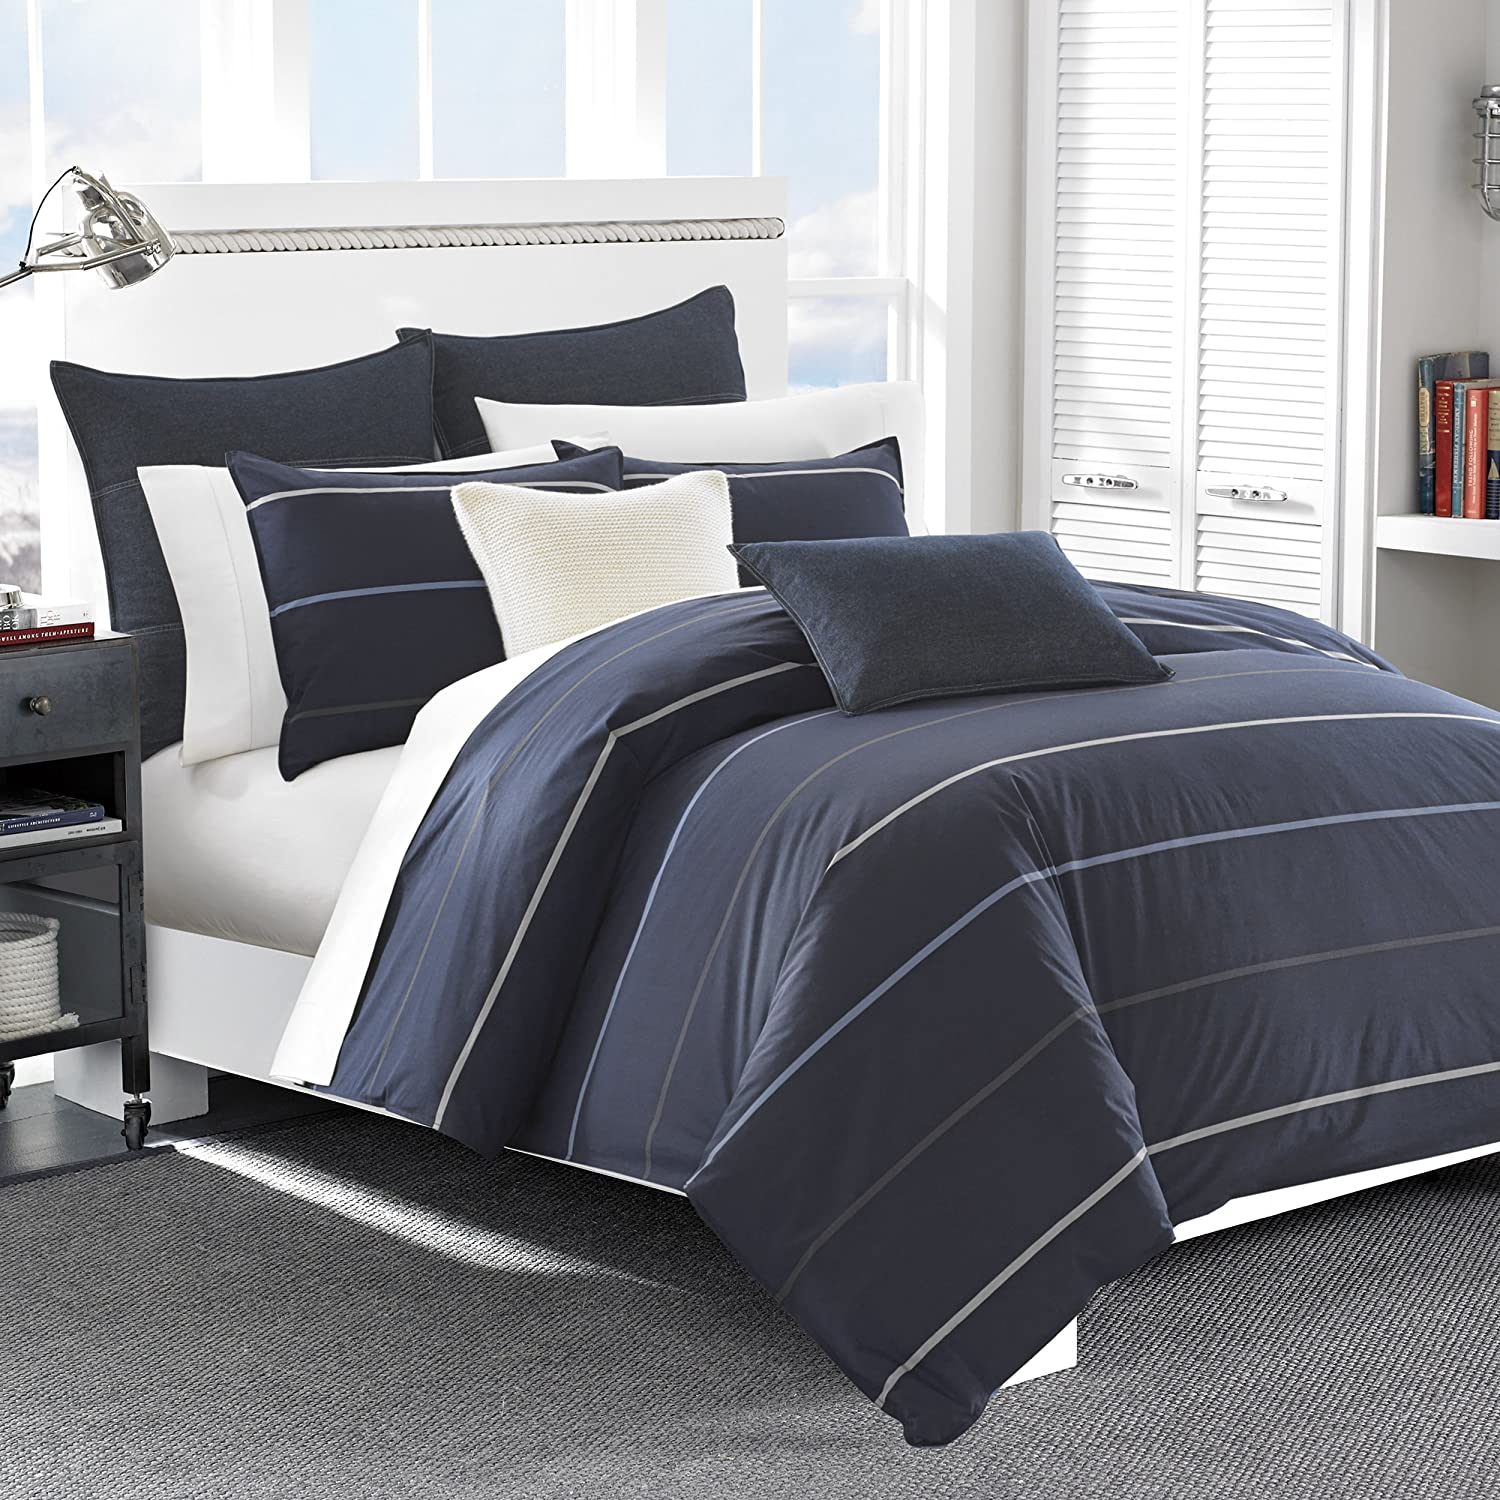 Nautica 217309 Southport Cotton Comforter Set, Full/Queen, Blue/White